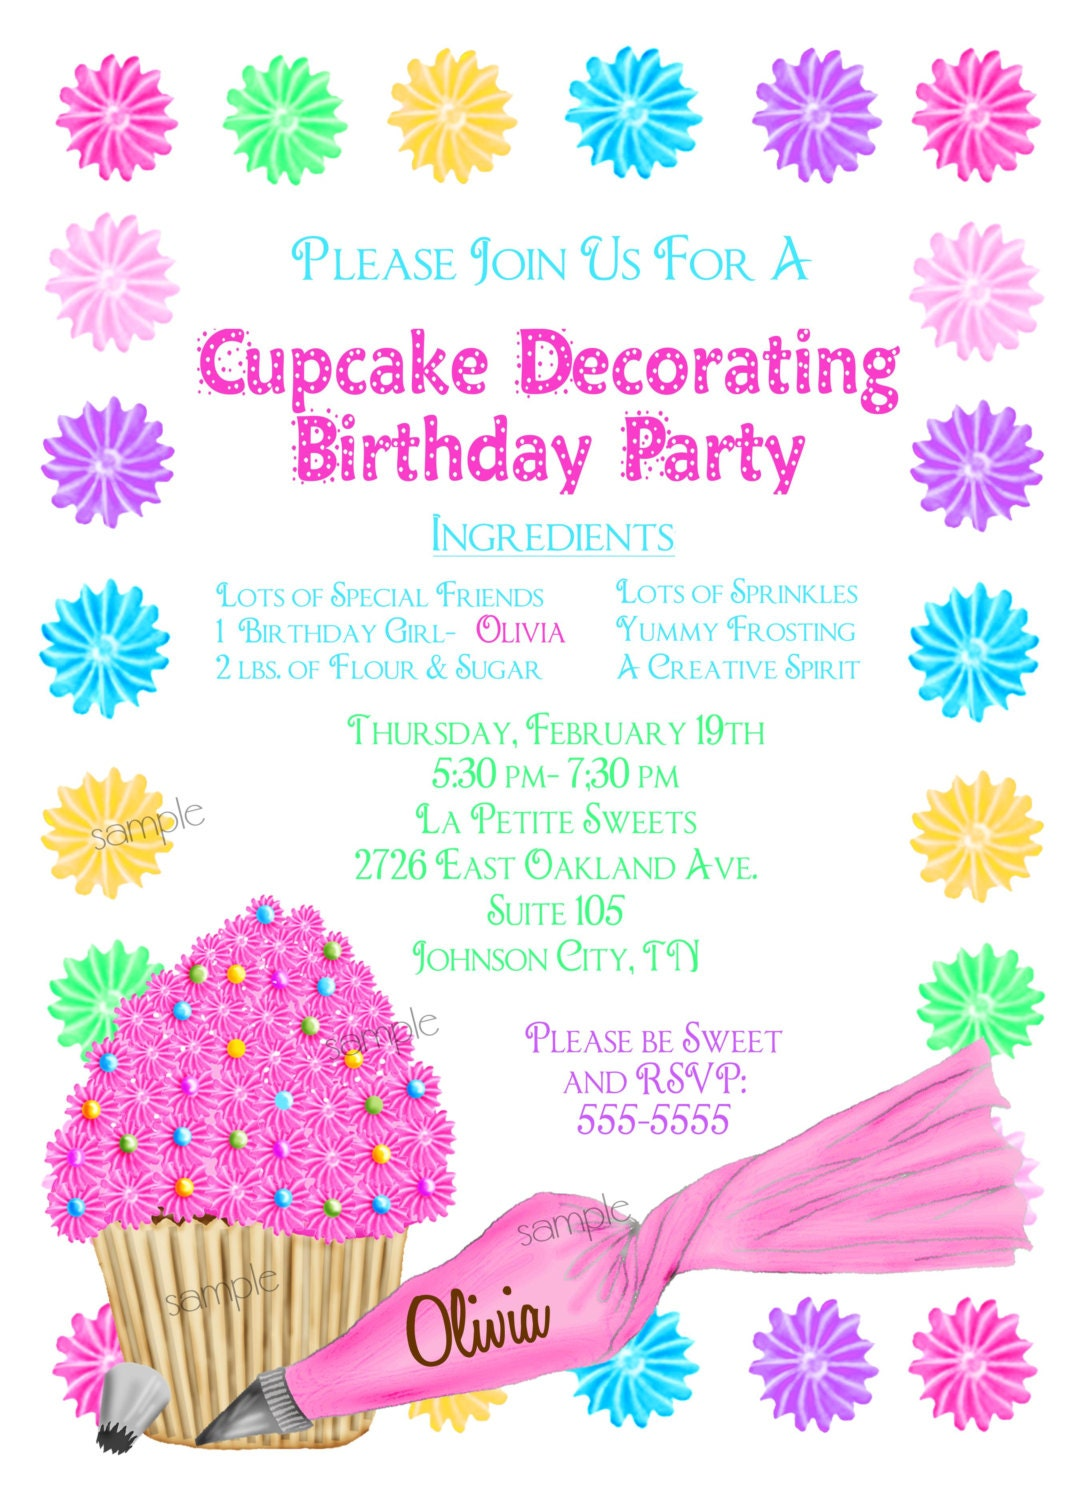 Cupcake Decorating Invitations Cupcake party Baking